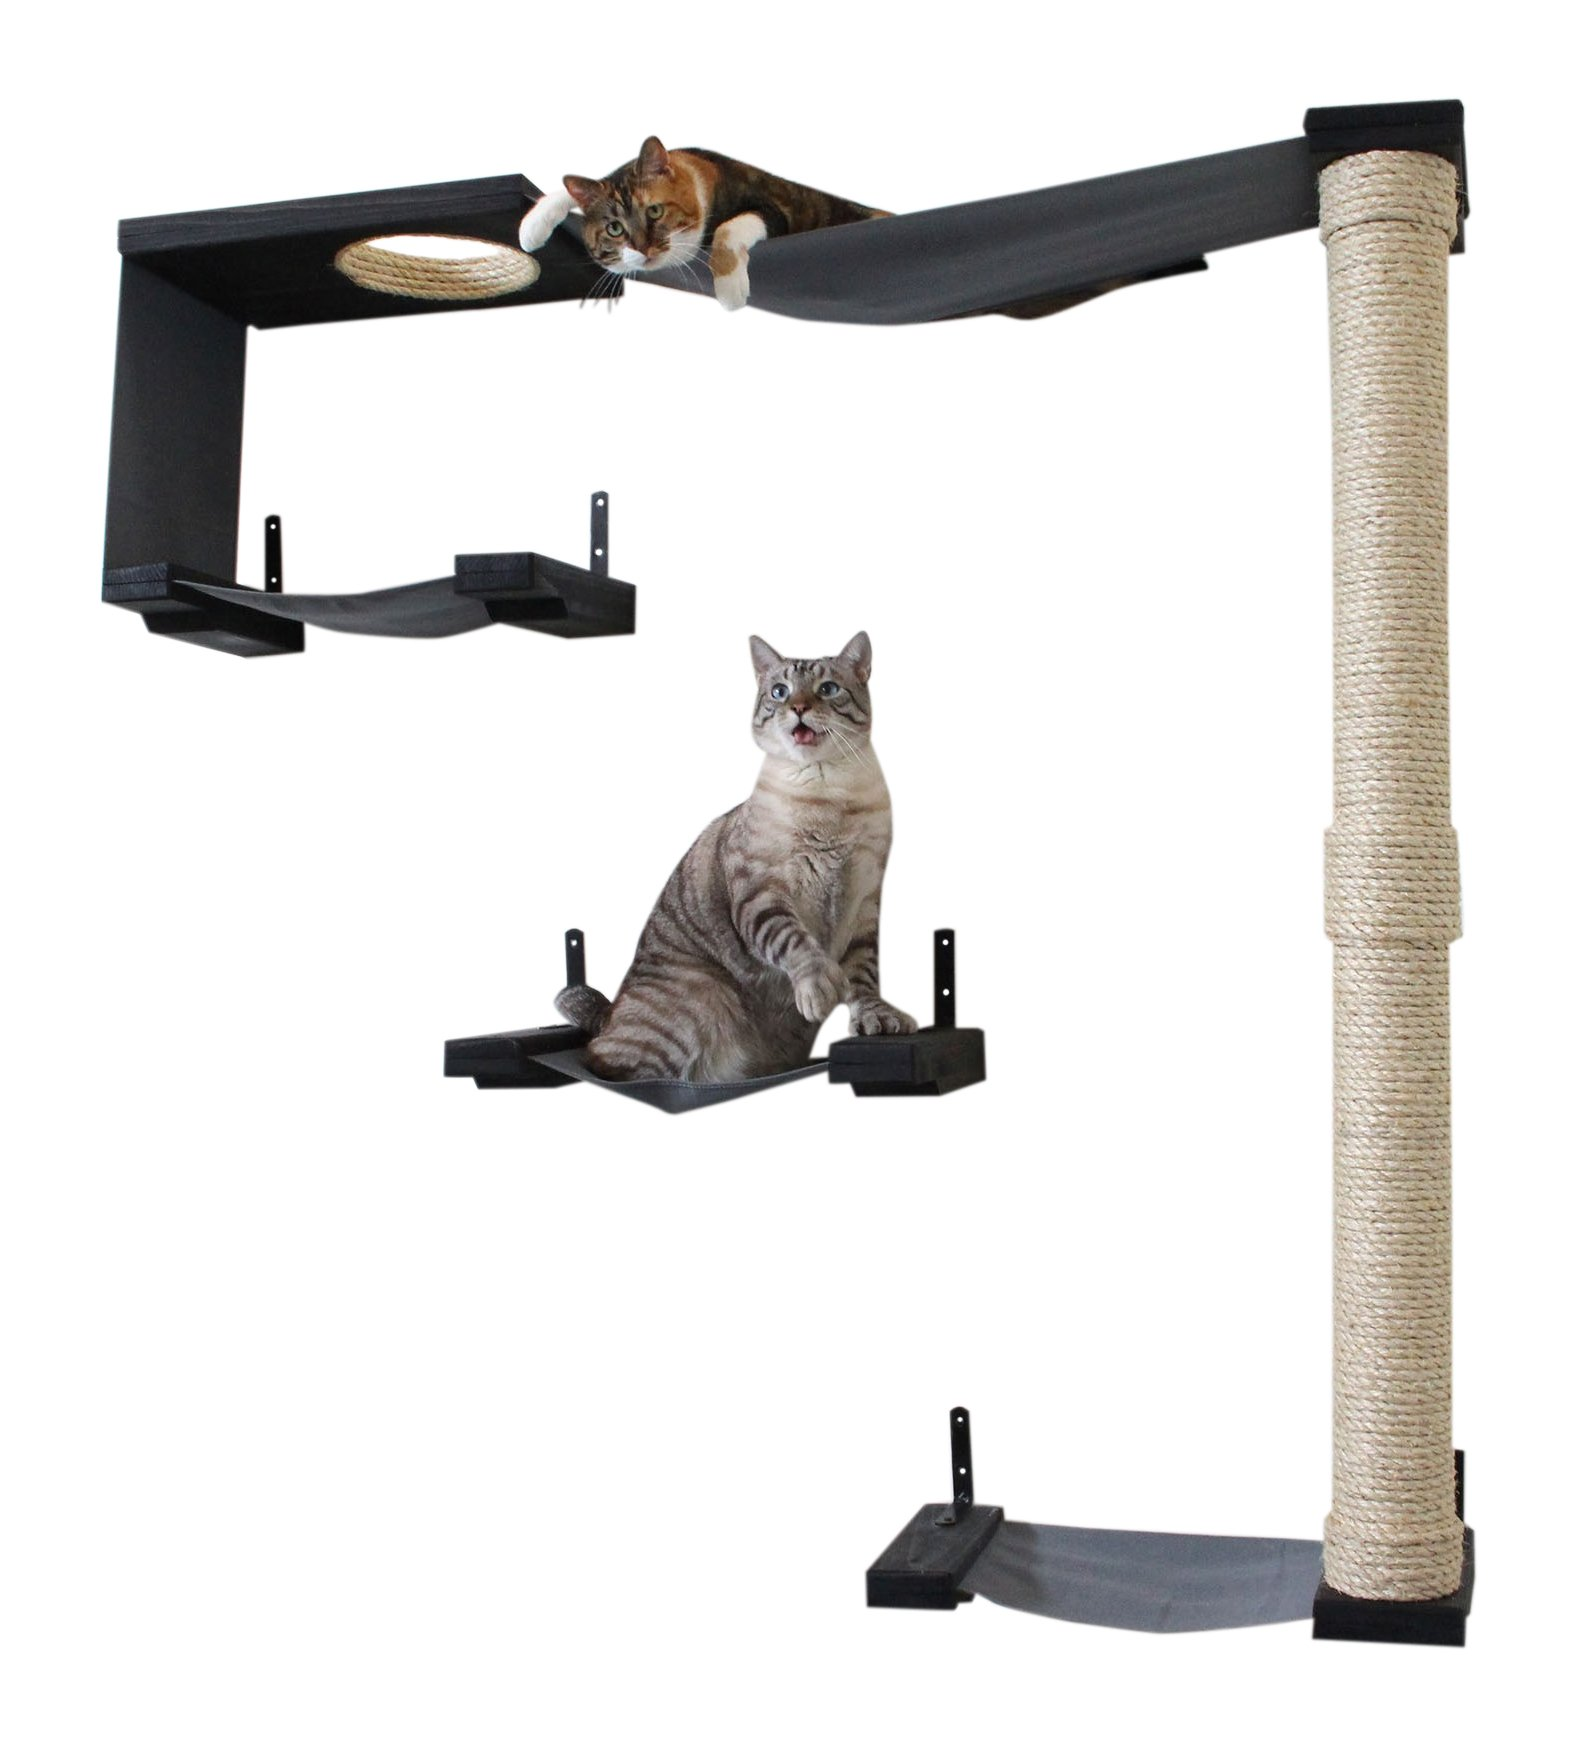 CatastrophiCreations Sky Track Hammock & Climbing Activity Center Handcrafted Wall-Mounted Cat Tree, Onyx